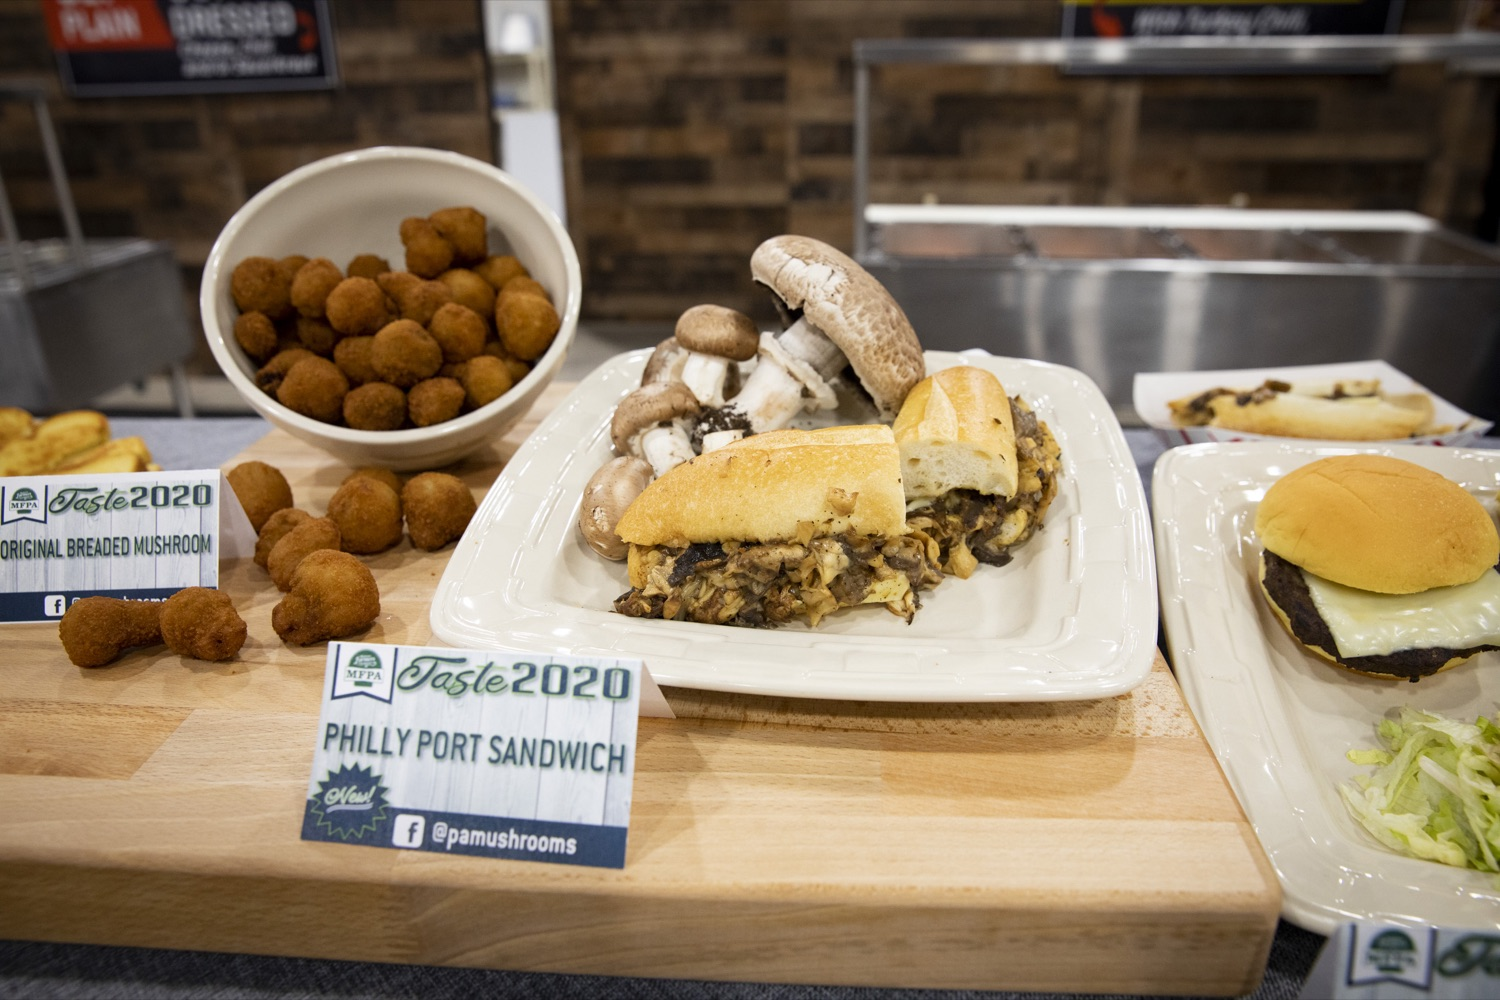 """<a href=""""http://filesource.abacast.com/commonwealthofpa/photo/17658_FARM_SHOW_FIRST_TASTE_CZ_05.JPG"""" target=""""_blank"""">⇣Download Photo<br></a>The Mushroom Farmers of Pennsylvania introduce their Philly port sandwich at the Pennsylvania Farm Show Food Court in Harrisburg on January 2, 2020."""